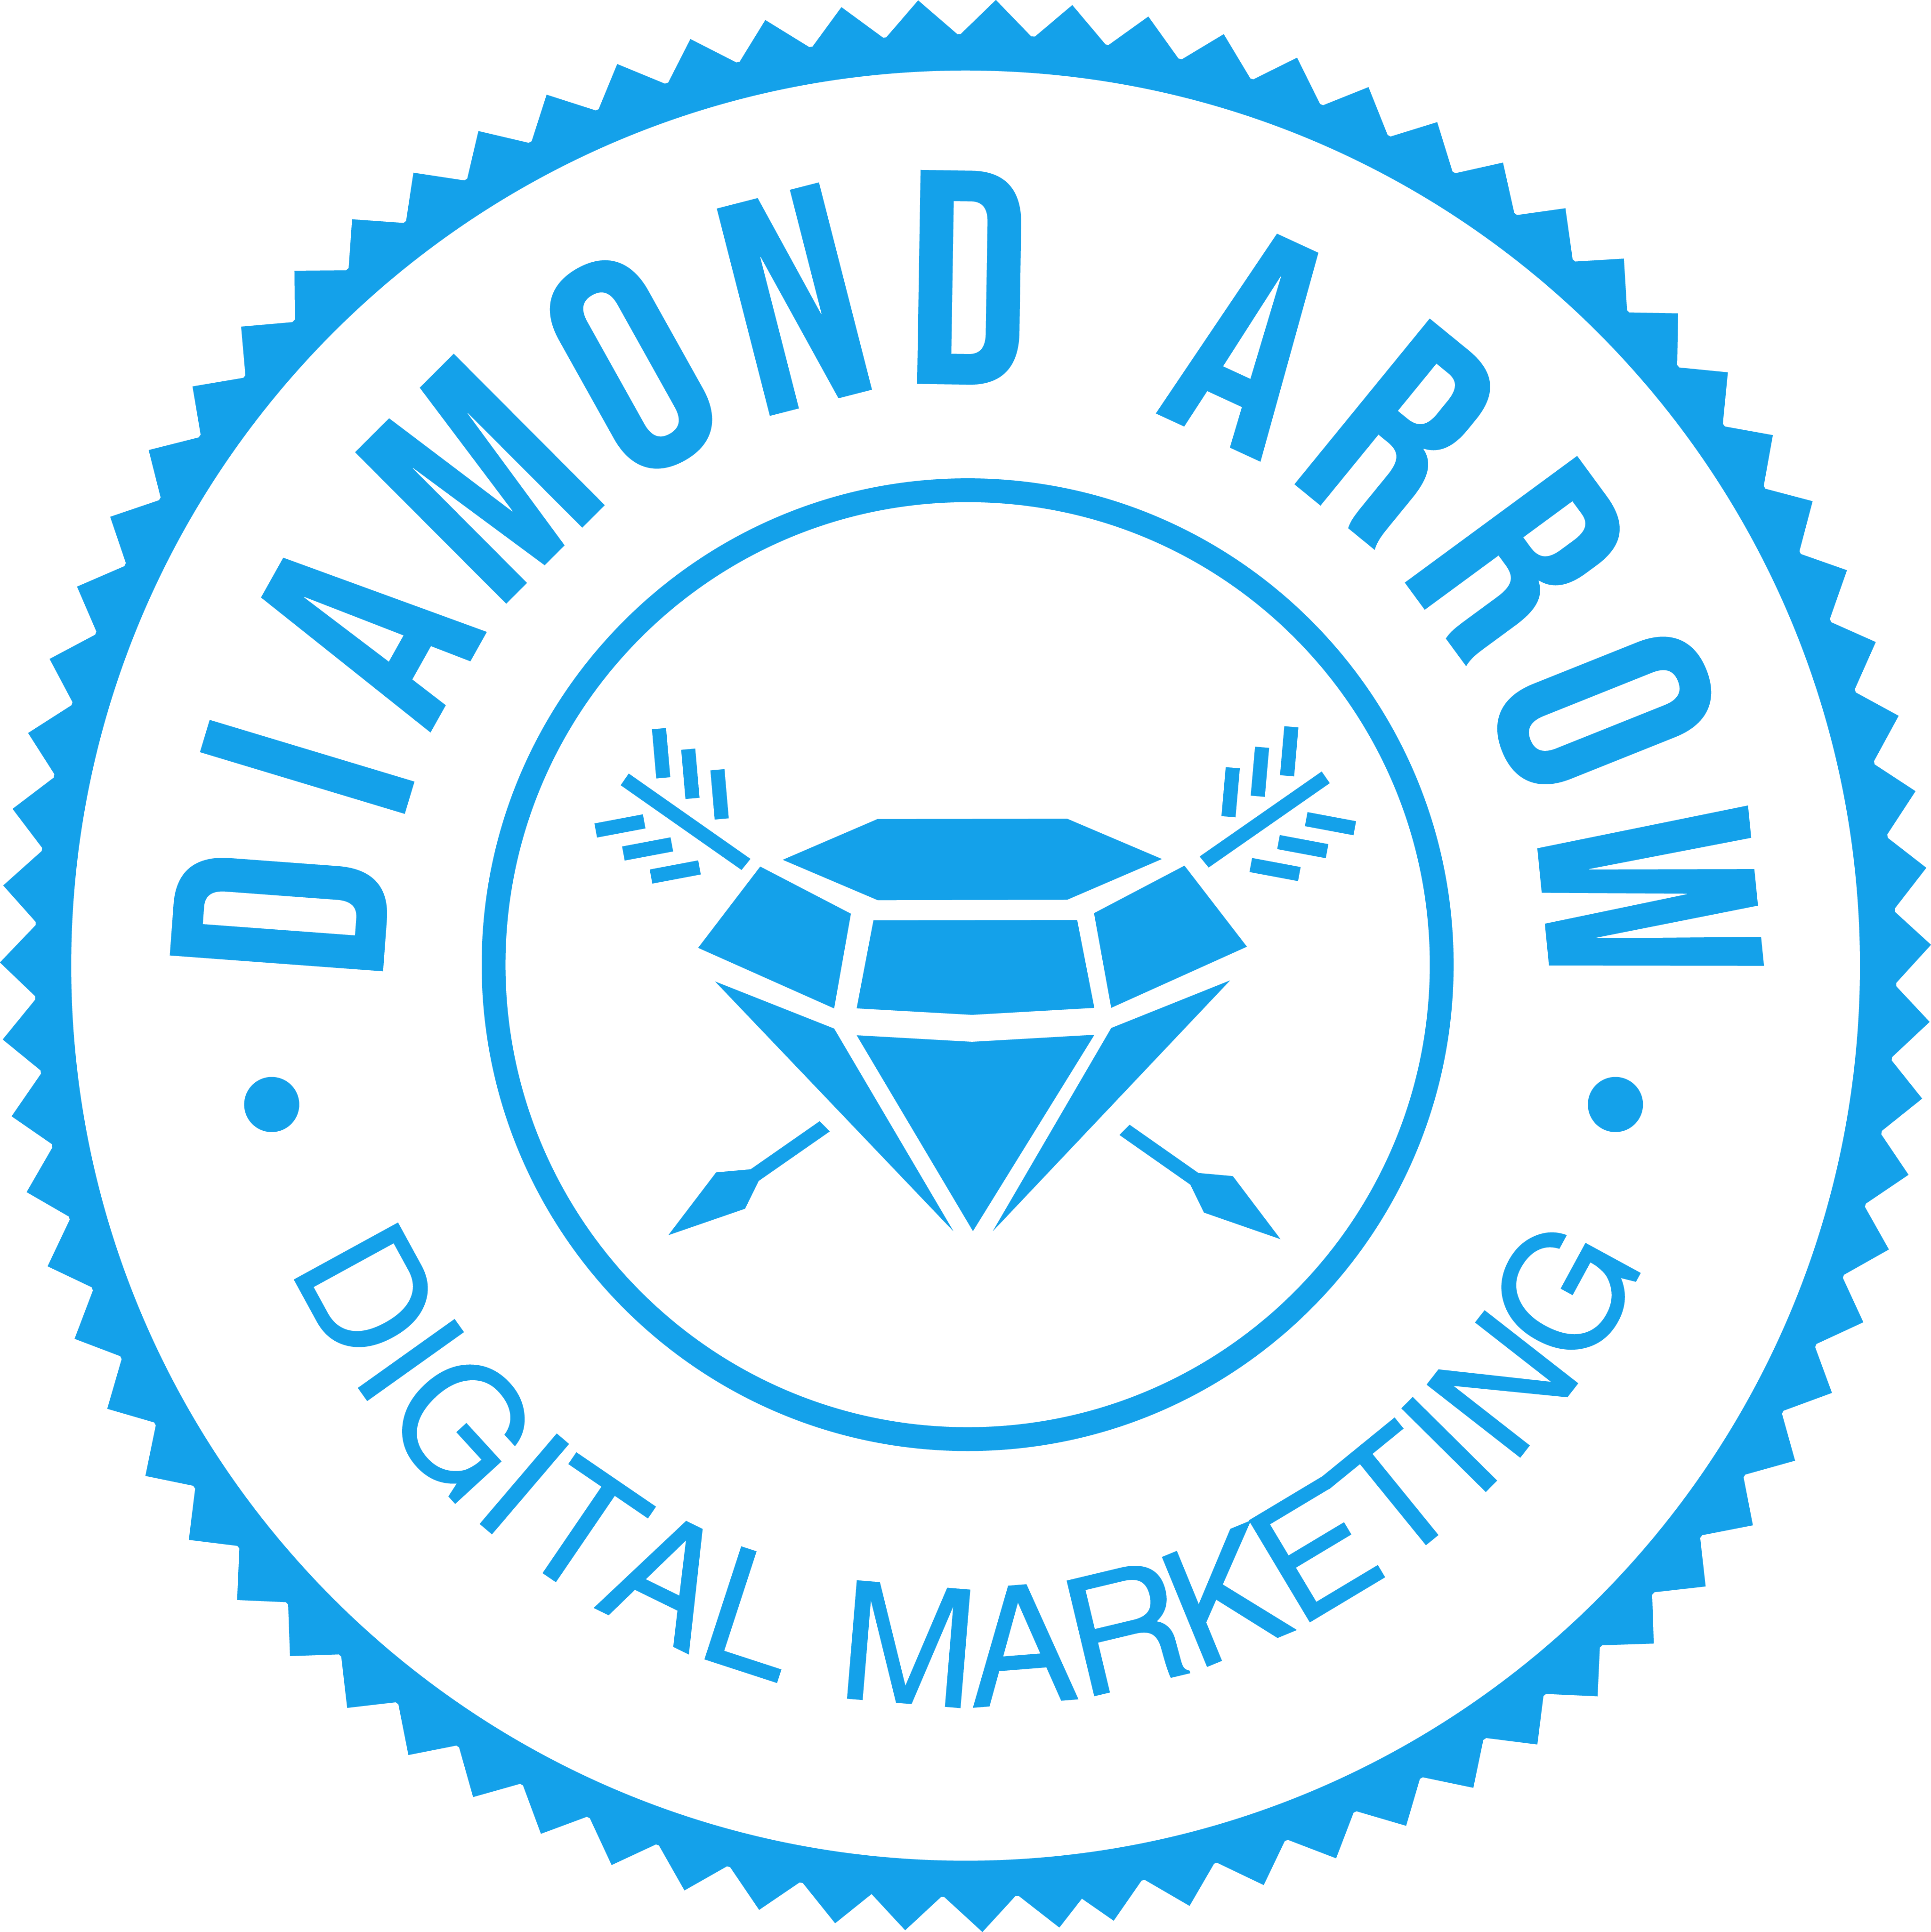 Diamond Arrow Digital Marketing Acquires Valor Mortgage Queen Creek as New Client